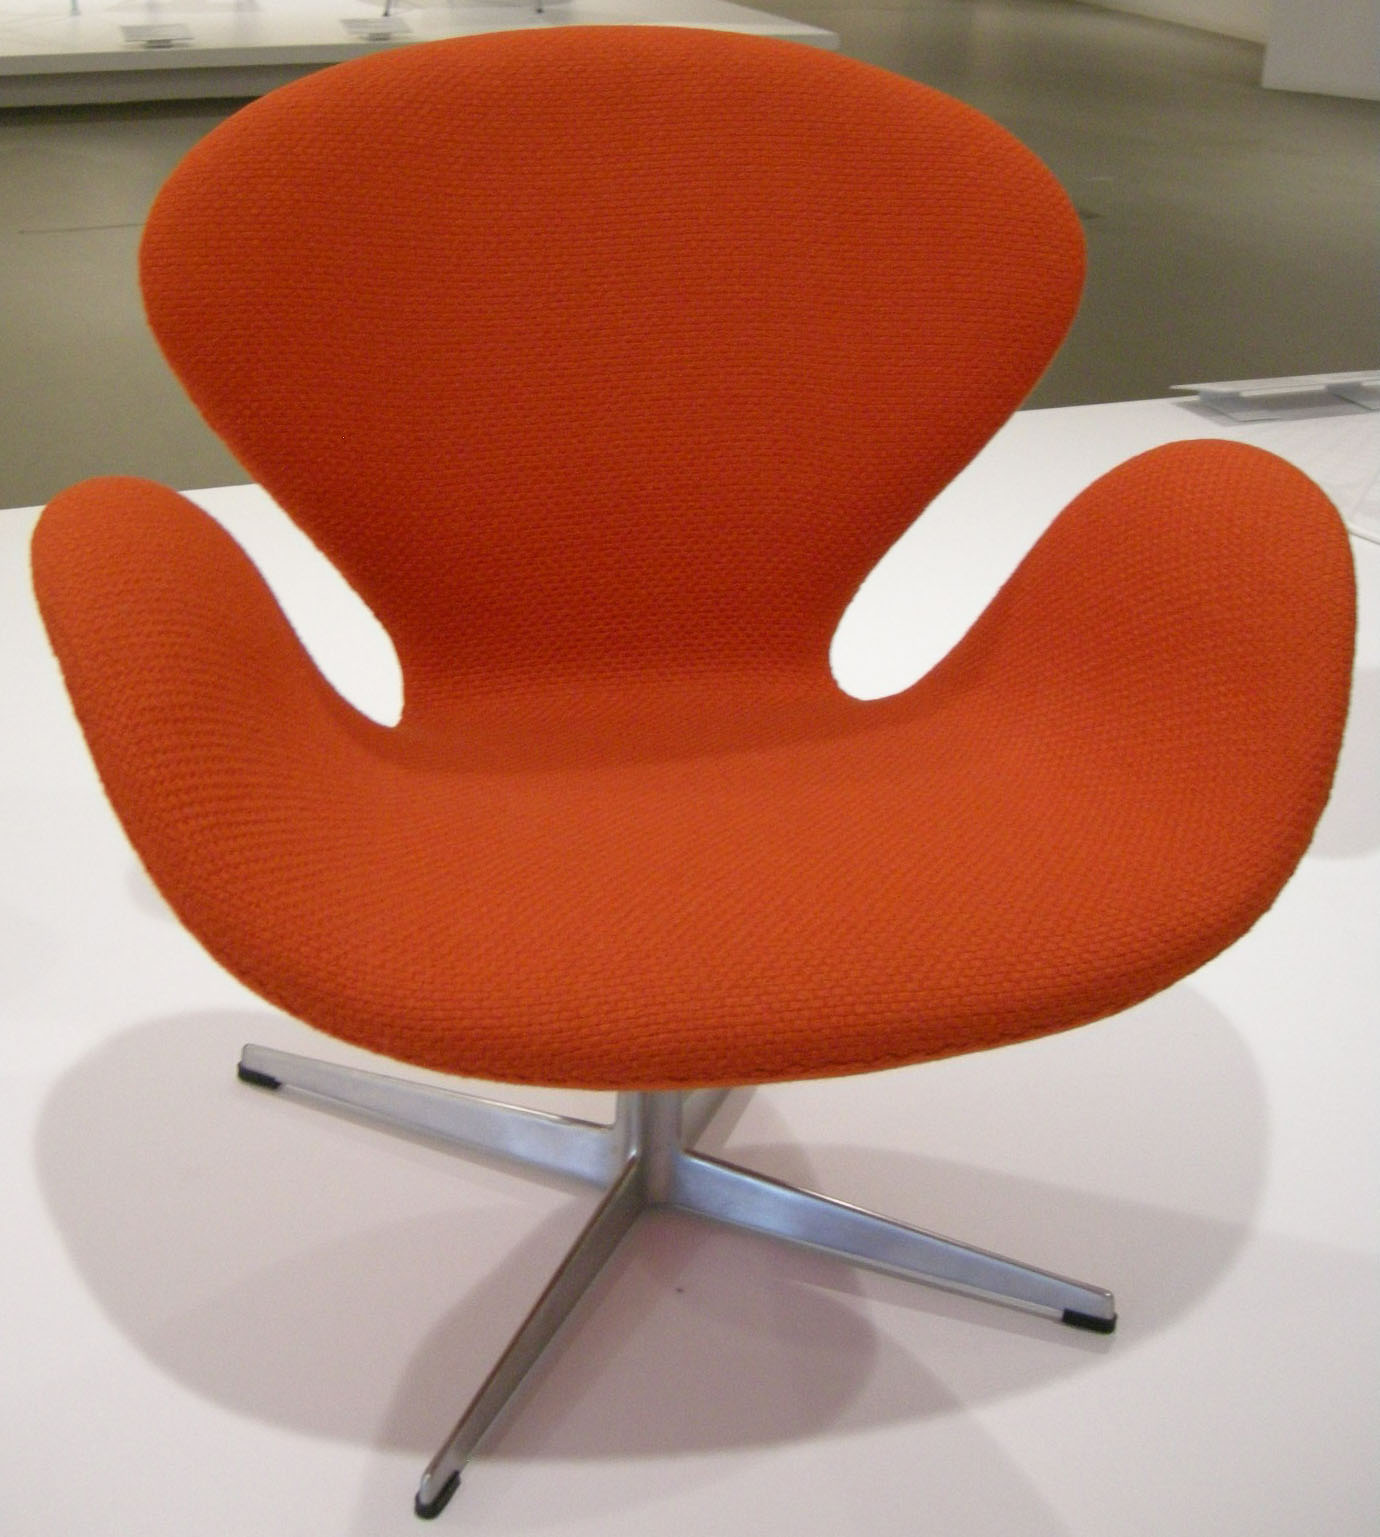 Swan chair. Image by sailko/Wikimedia Commons.